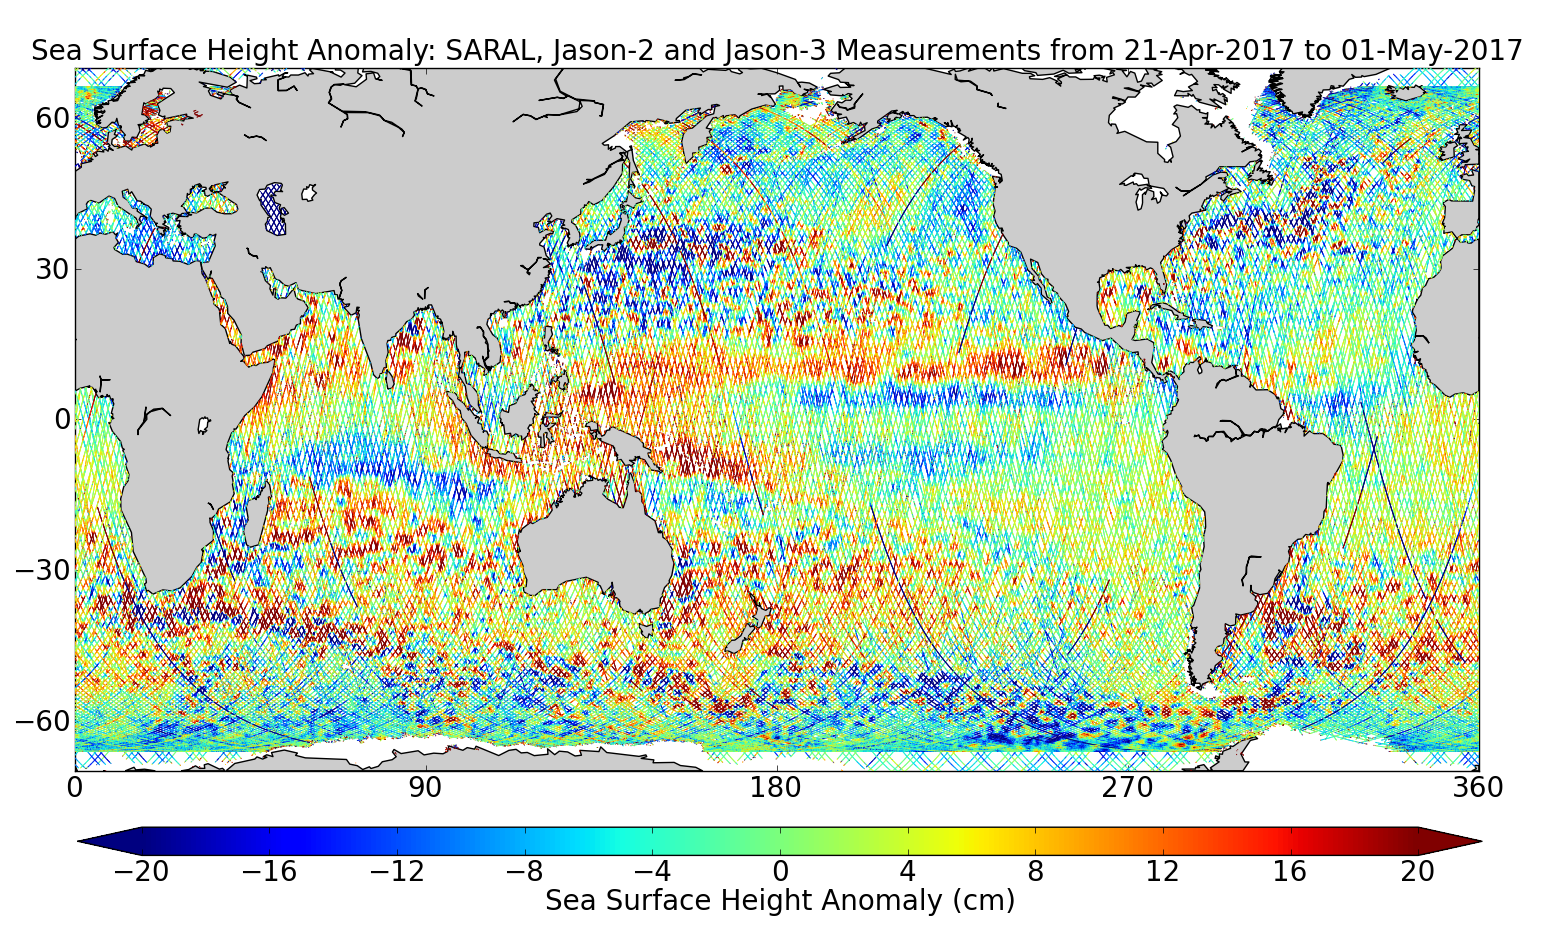 Sea Surface Height Anomaly: SARAL, Jason-2 and Jason-3 Measurements from 21-Apr-2017 to 01-May-2017